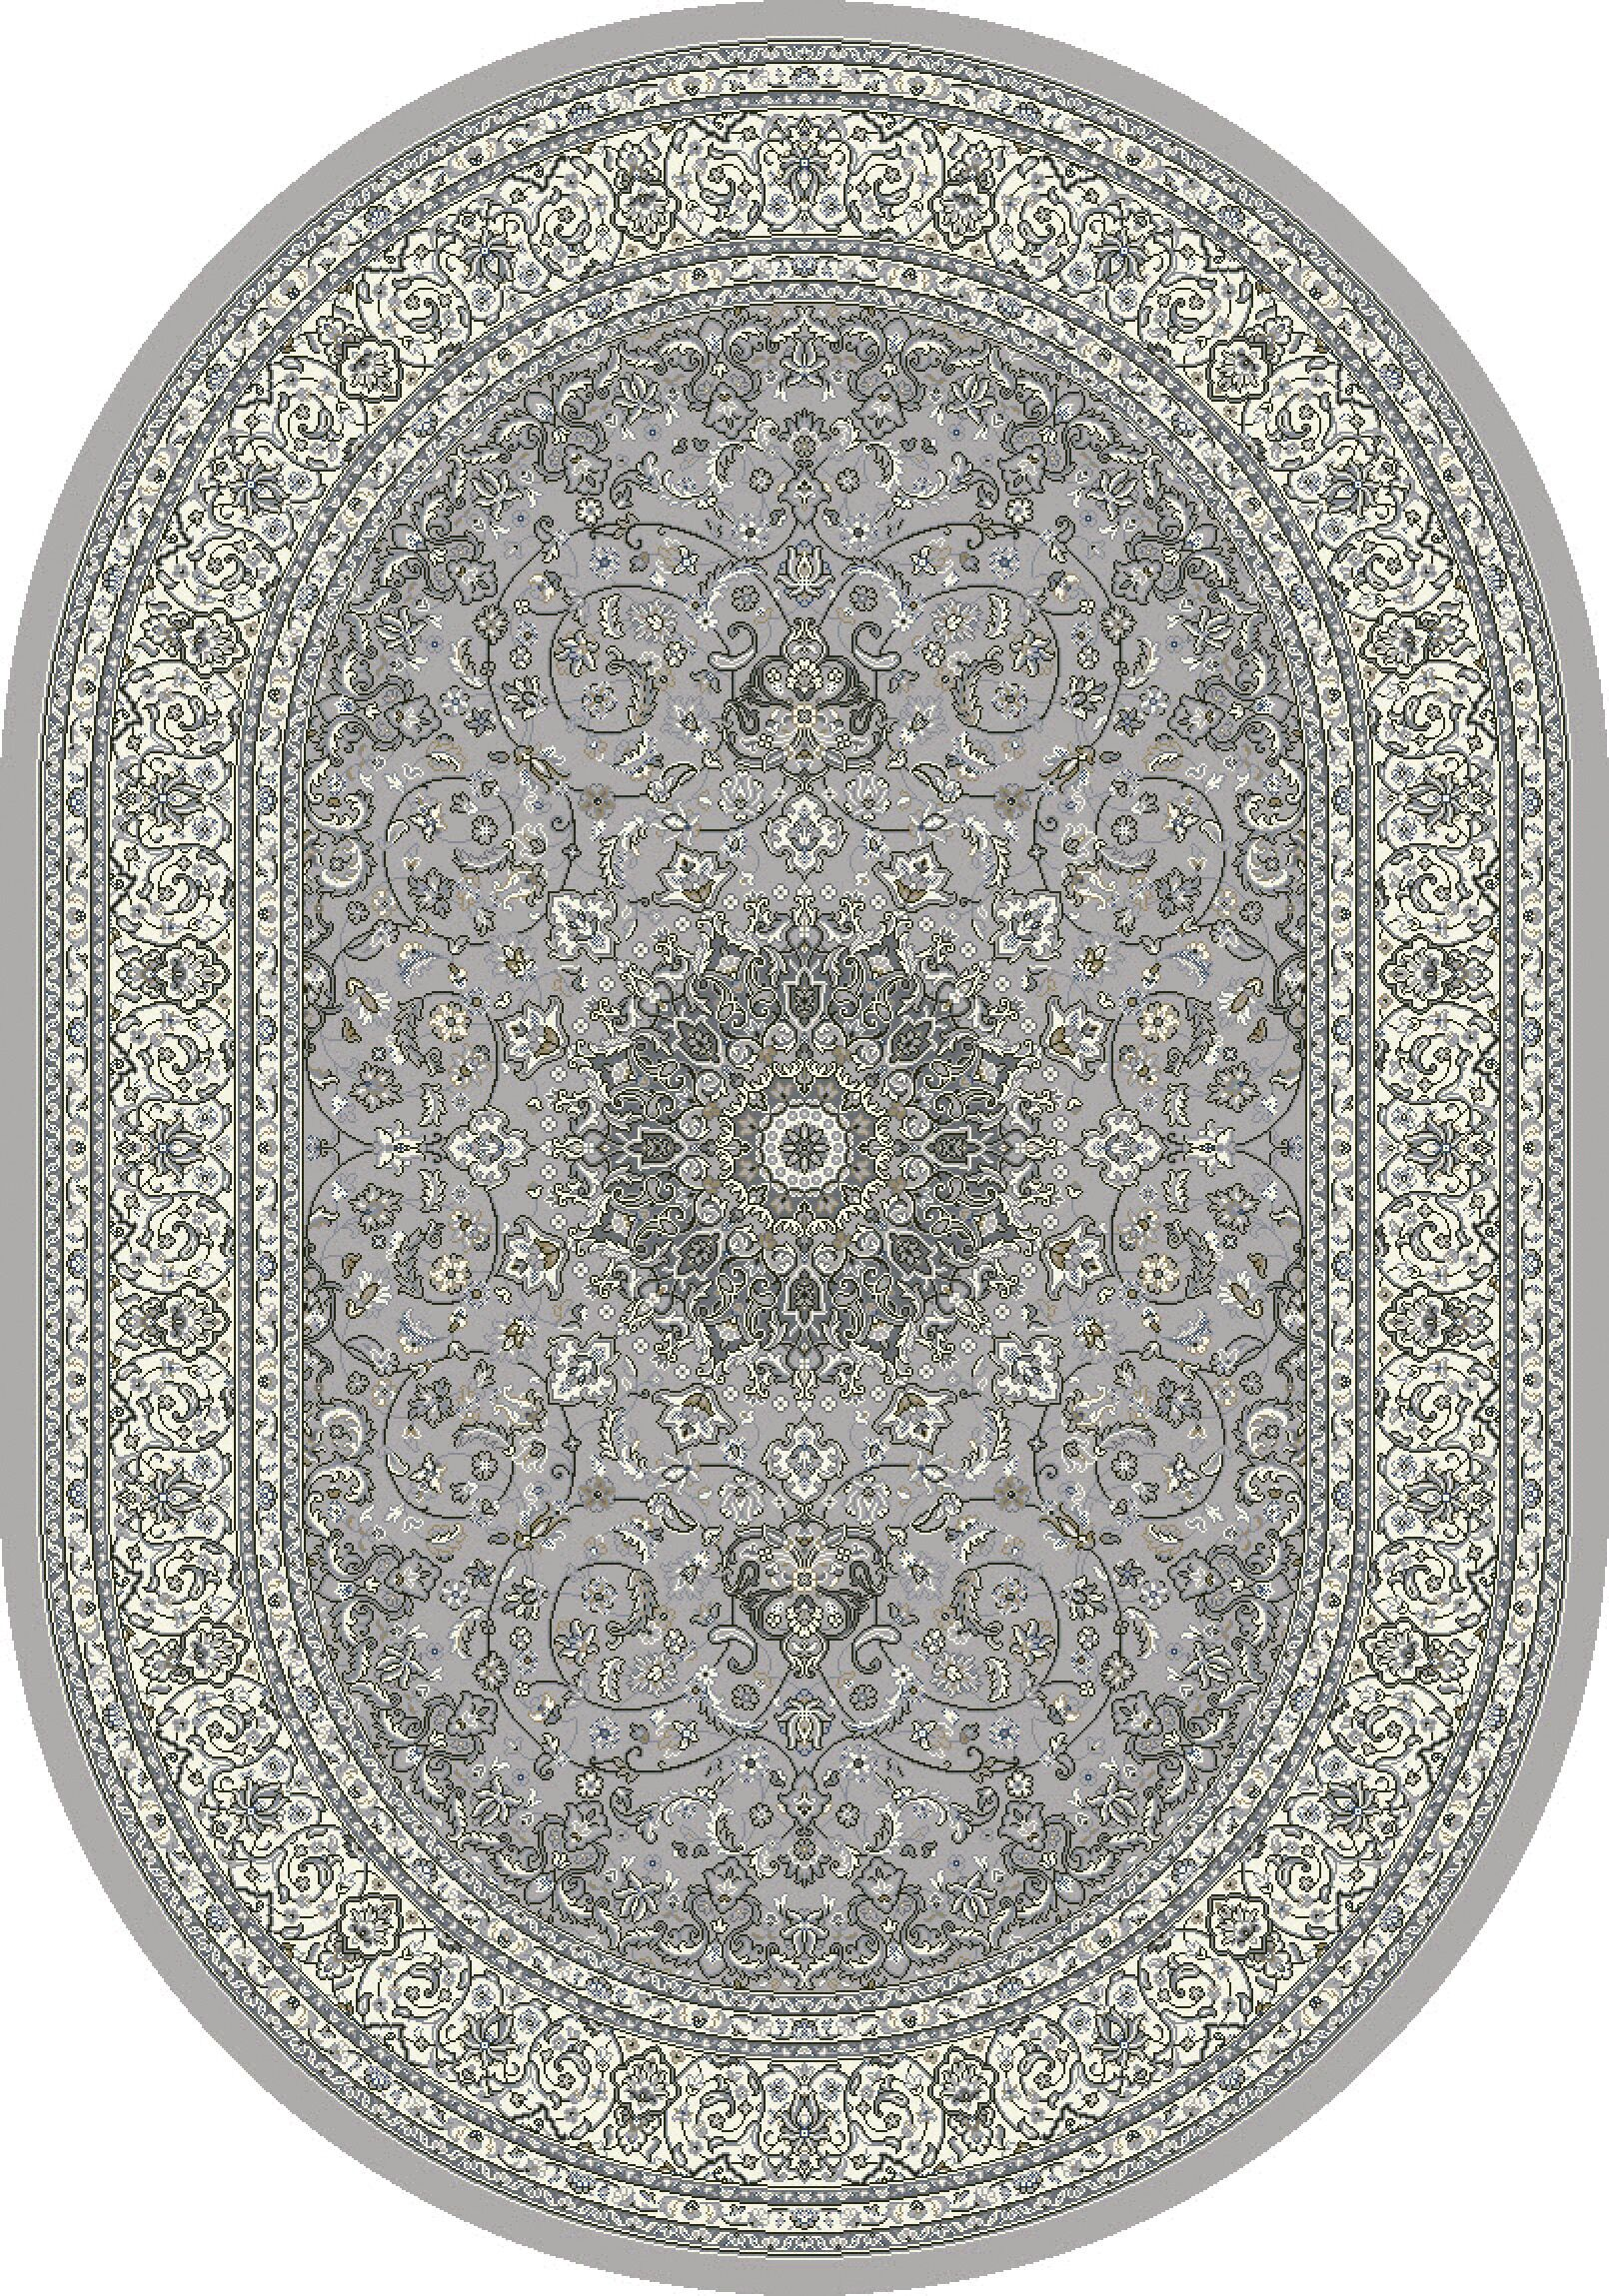 Attell Soft Gray/Cream Area Rug Rug Size: Oval 6'7